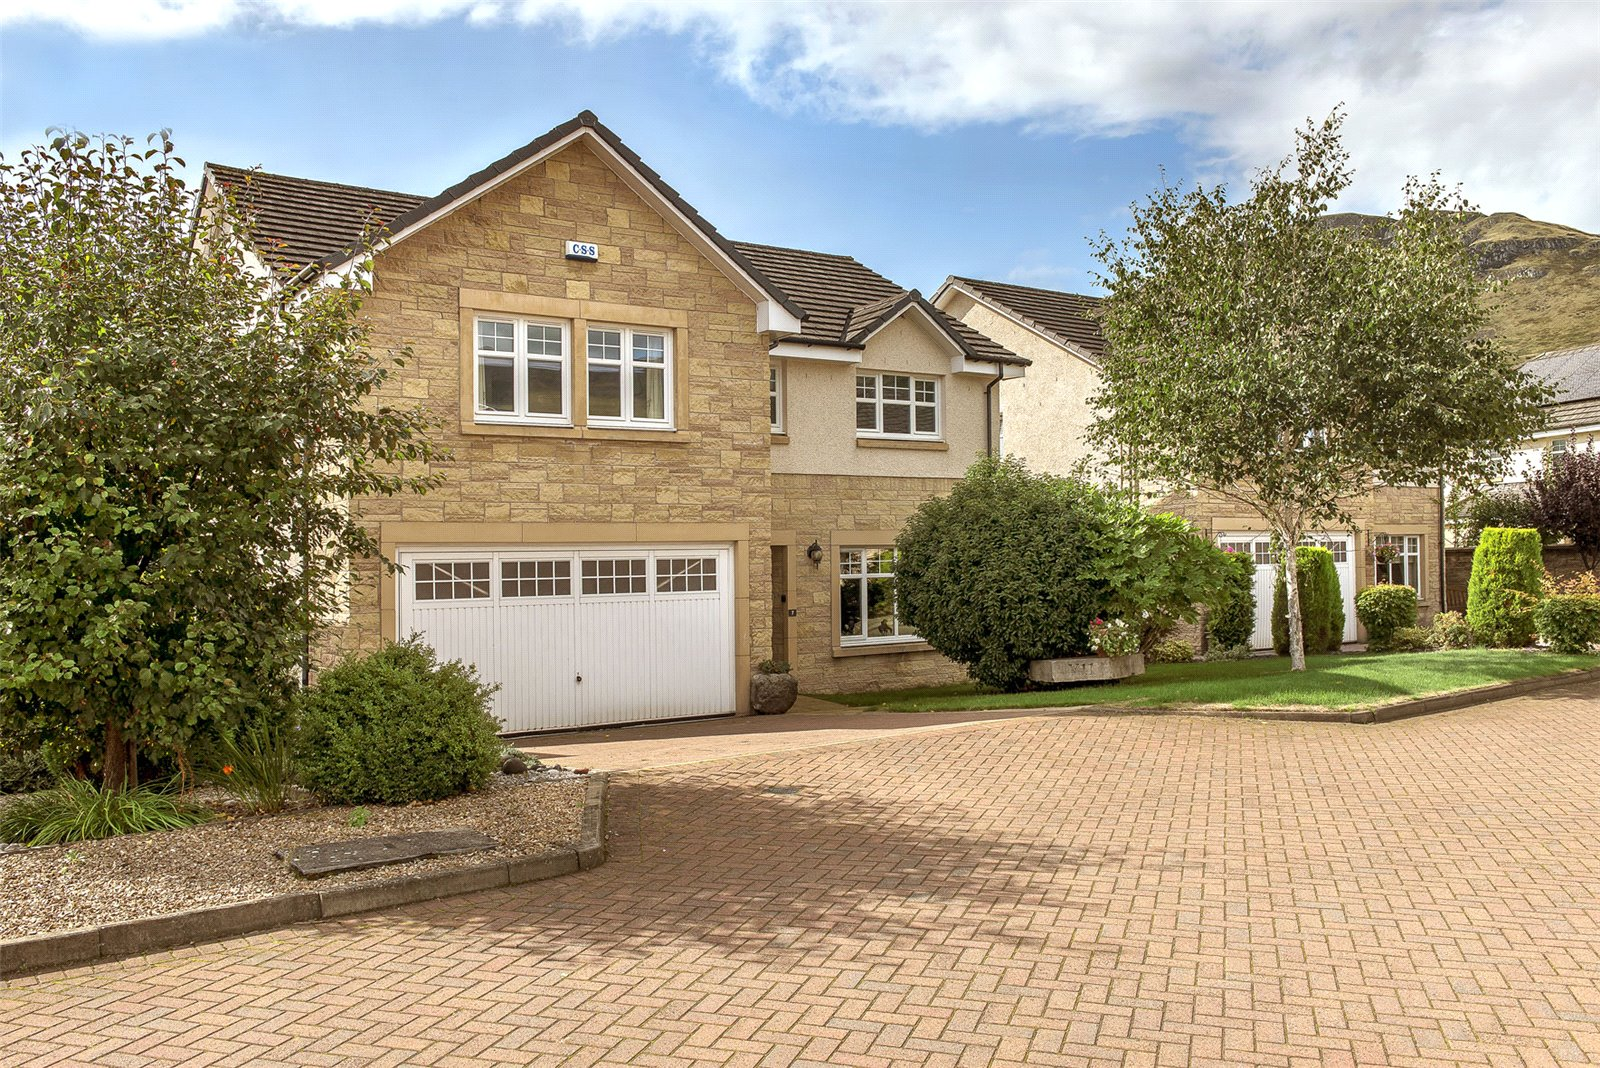 Spacious detached house the whole family will love